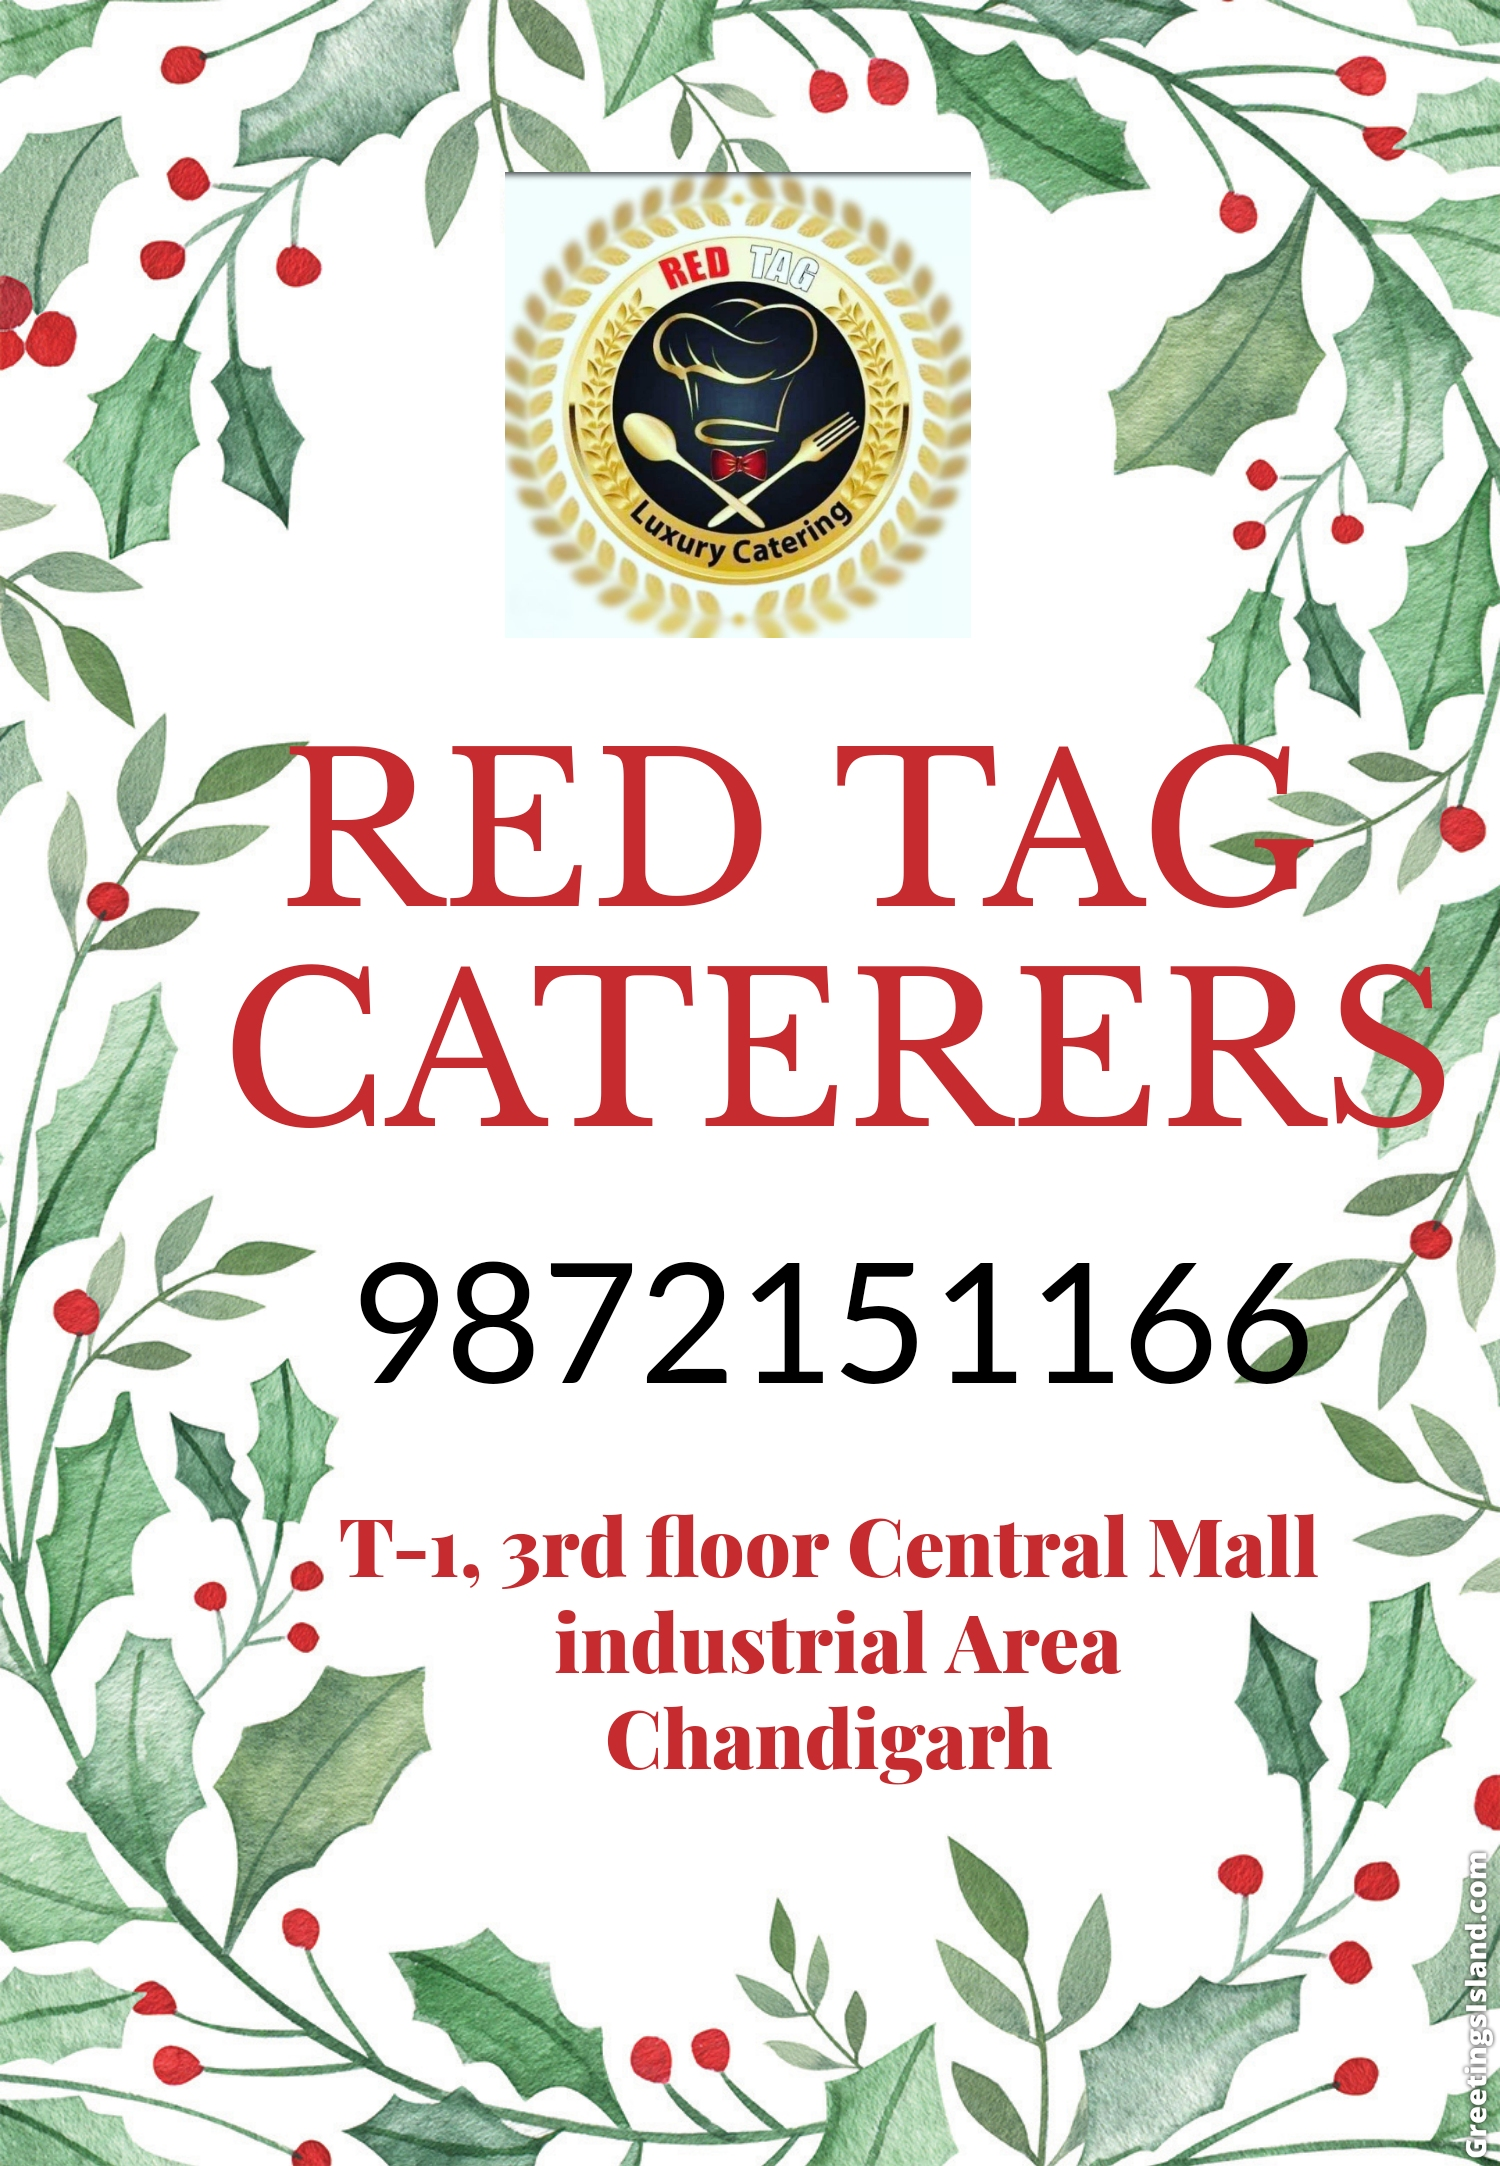 BEST CATERERS IN CHANDIGARH  | Red Tag Caterers | Best caterers in Chandigarh, top caterers in Chandigarh, exclusive catering service in Chandigarh, premier catering service in Chandigarh  - GL97679